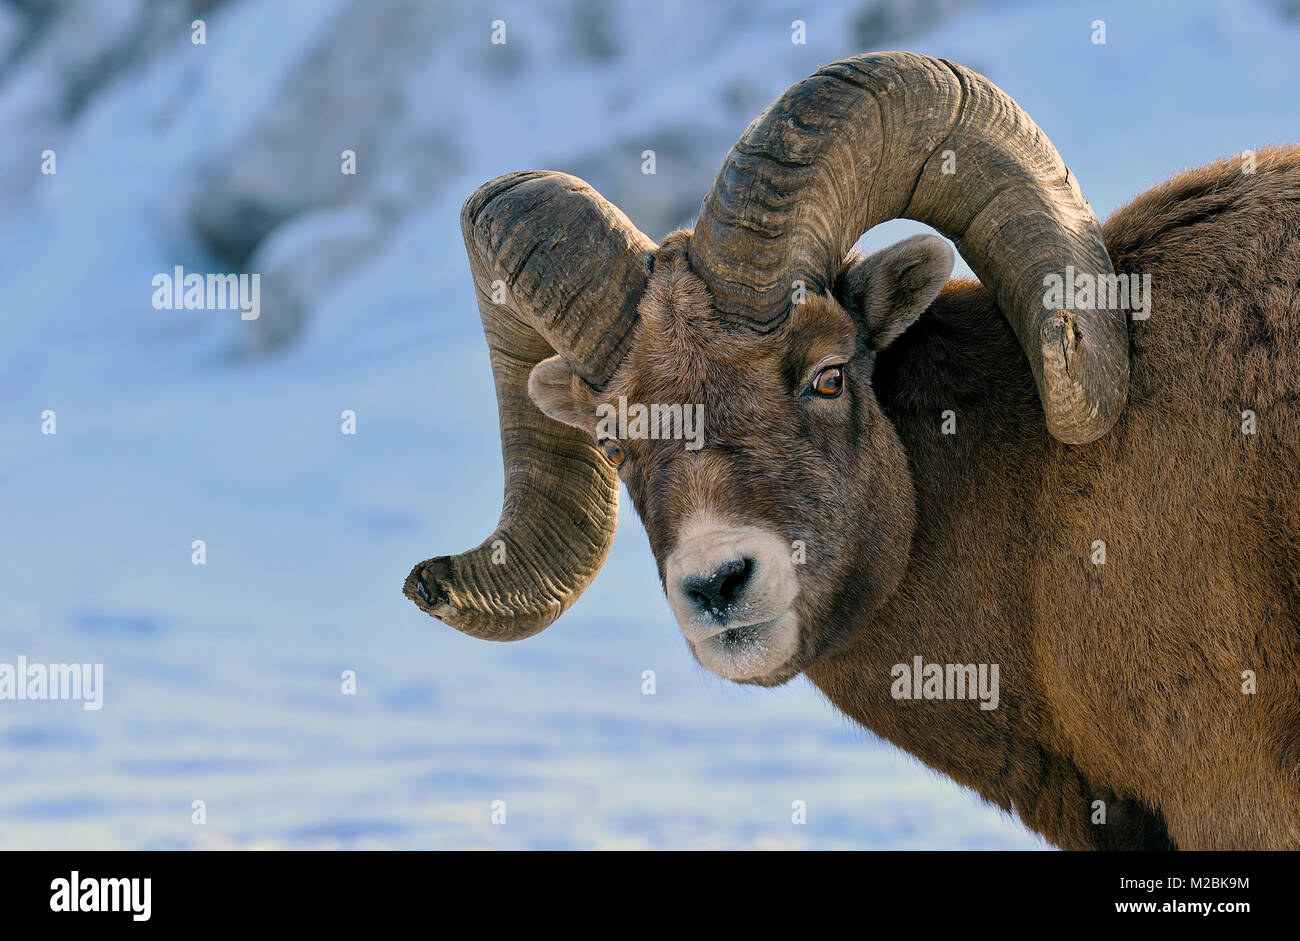 An adult male Bighorn sheep (Ovis canadensis),  looking back with a 'don't bother me' expression on - Stock Image